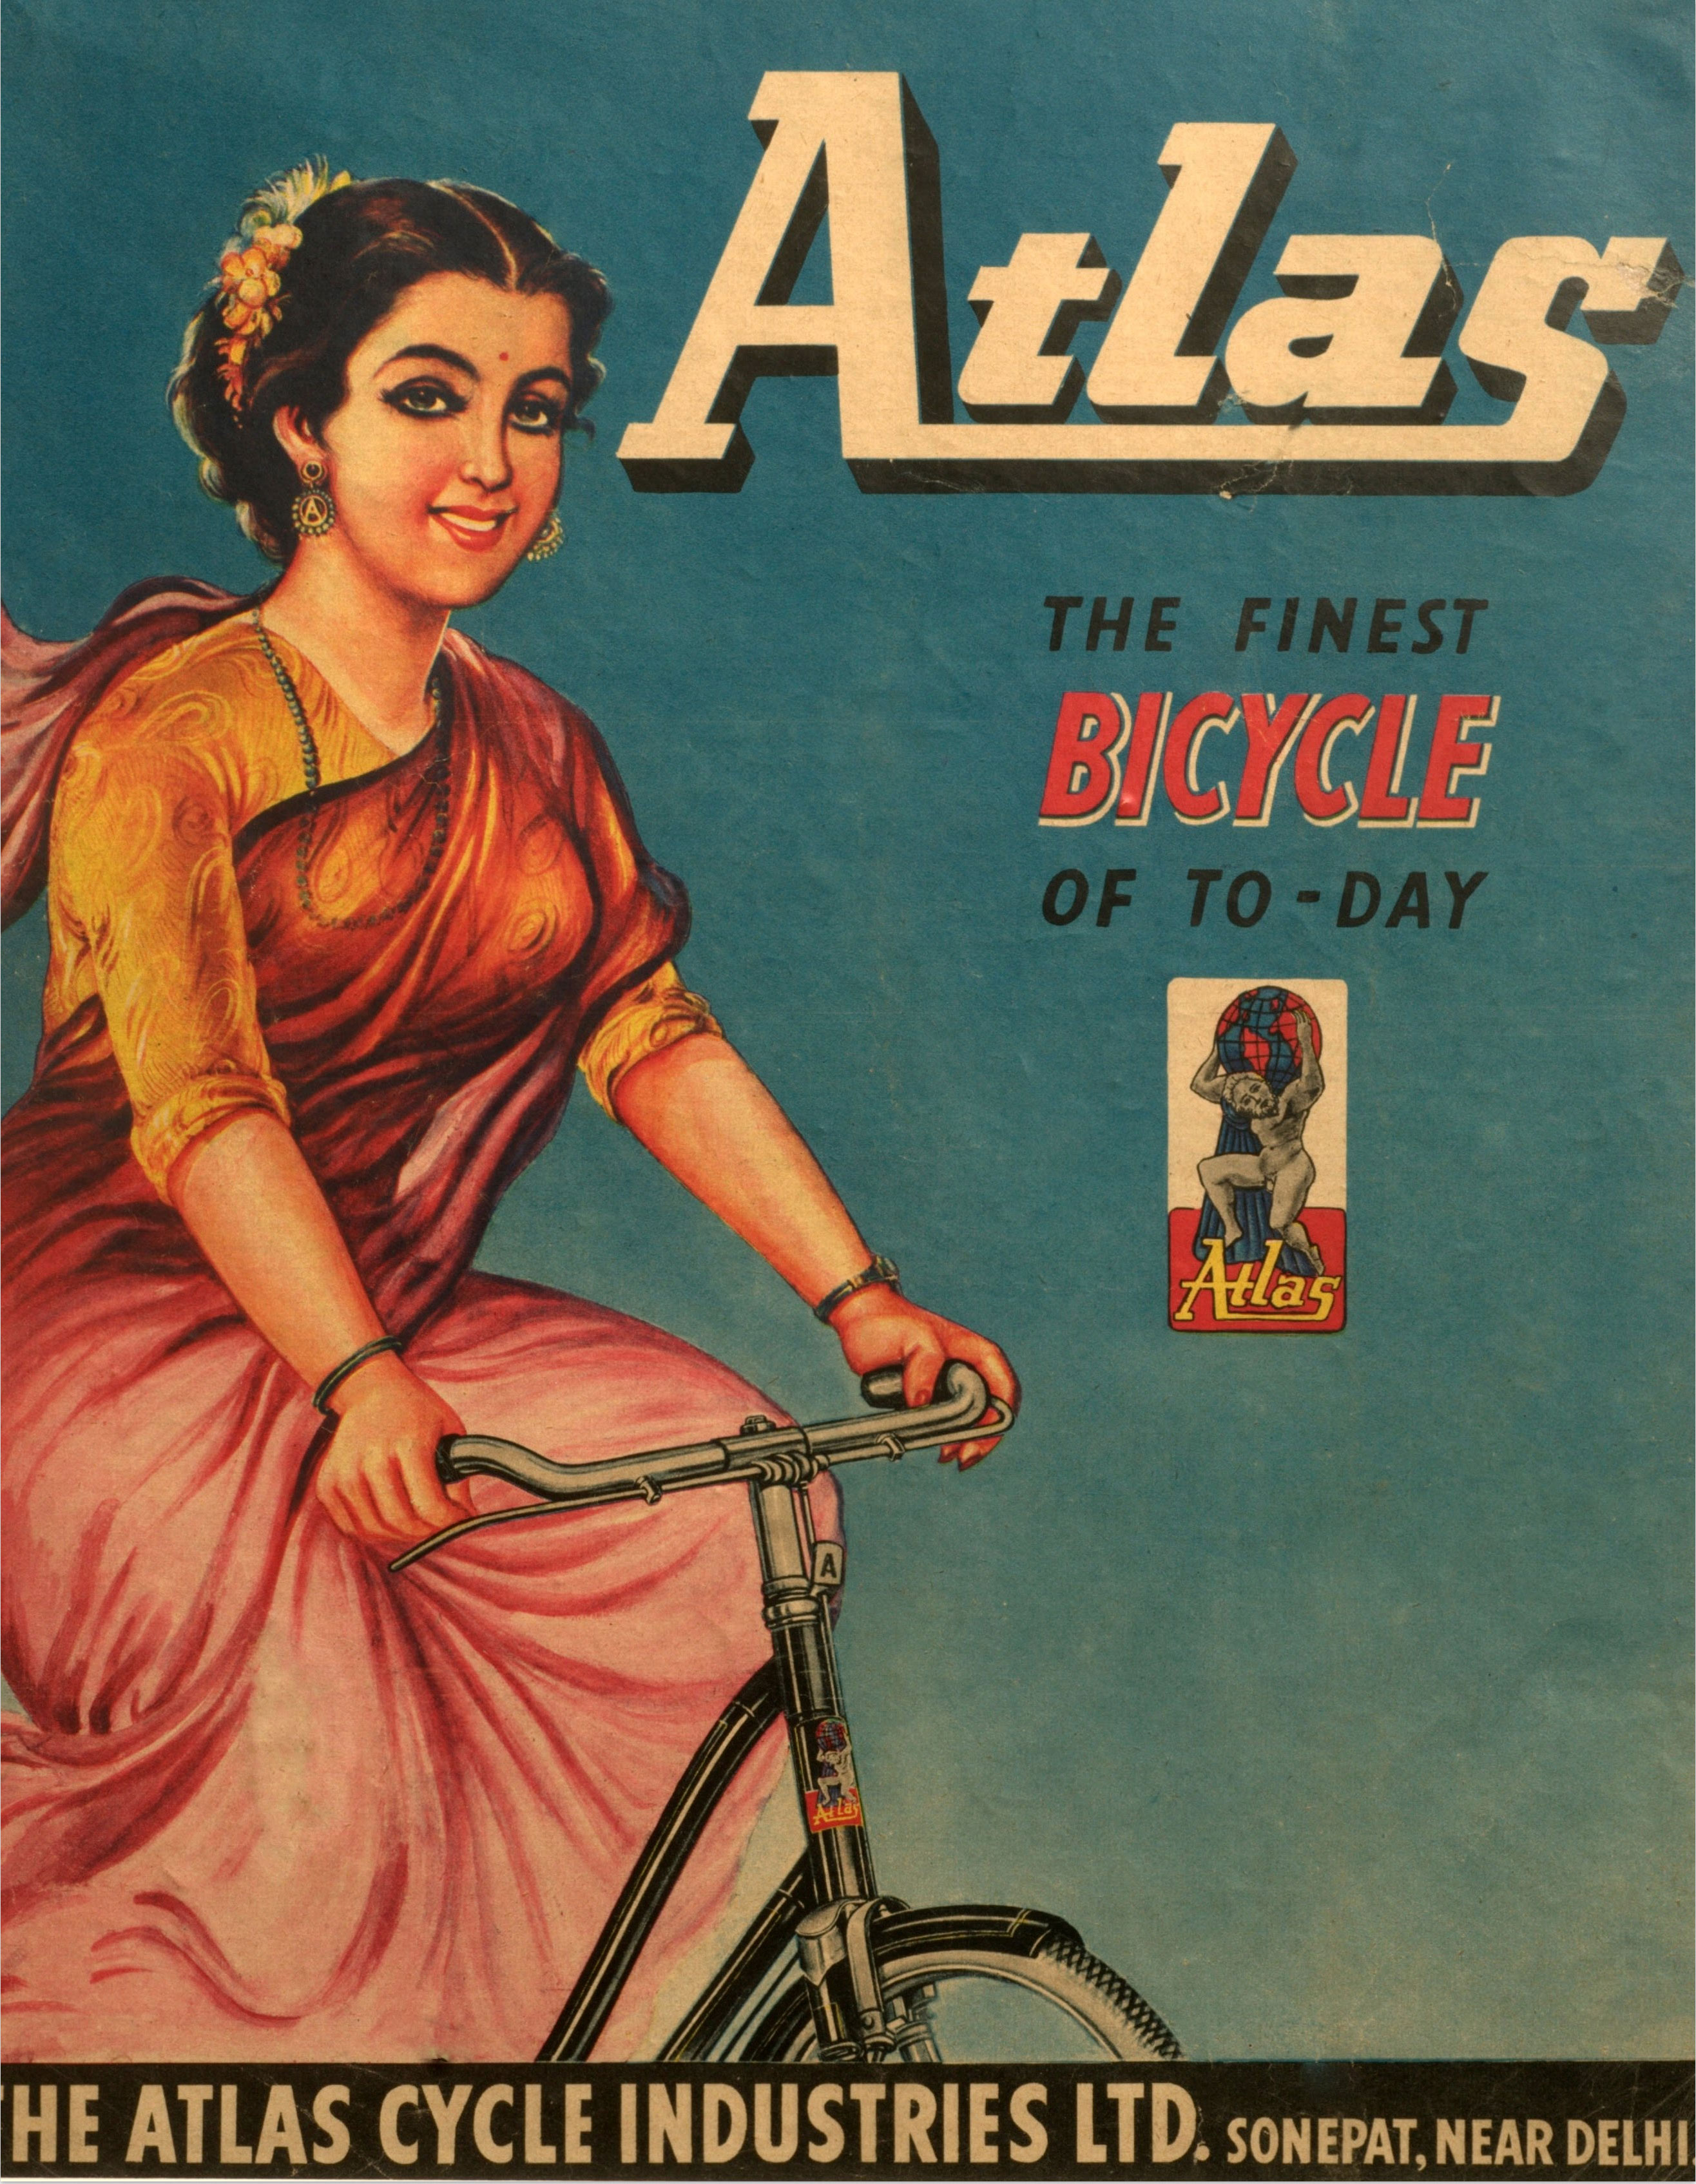 Atlas-Bicycle-Advertisement---India-1973.jpg